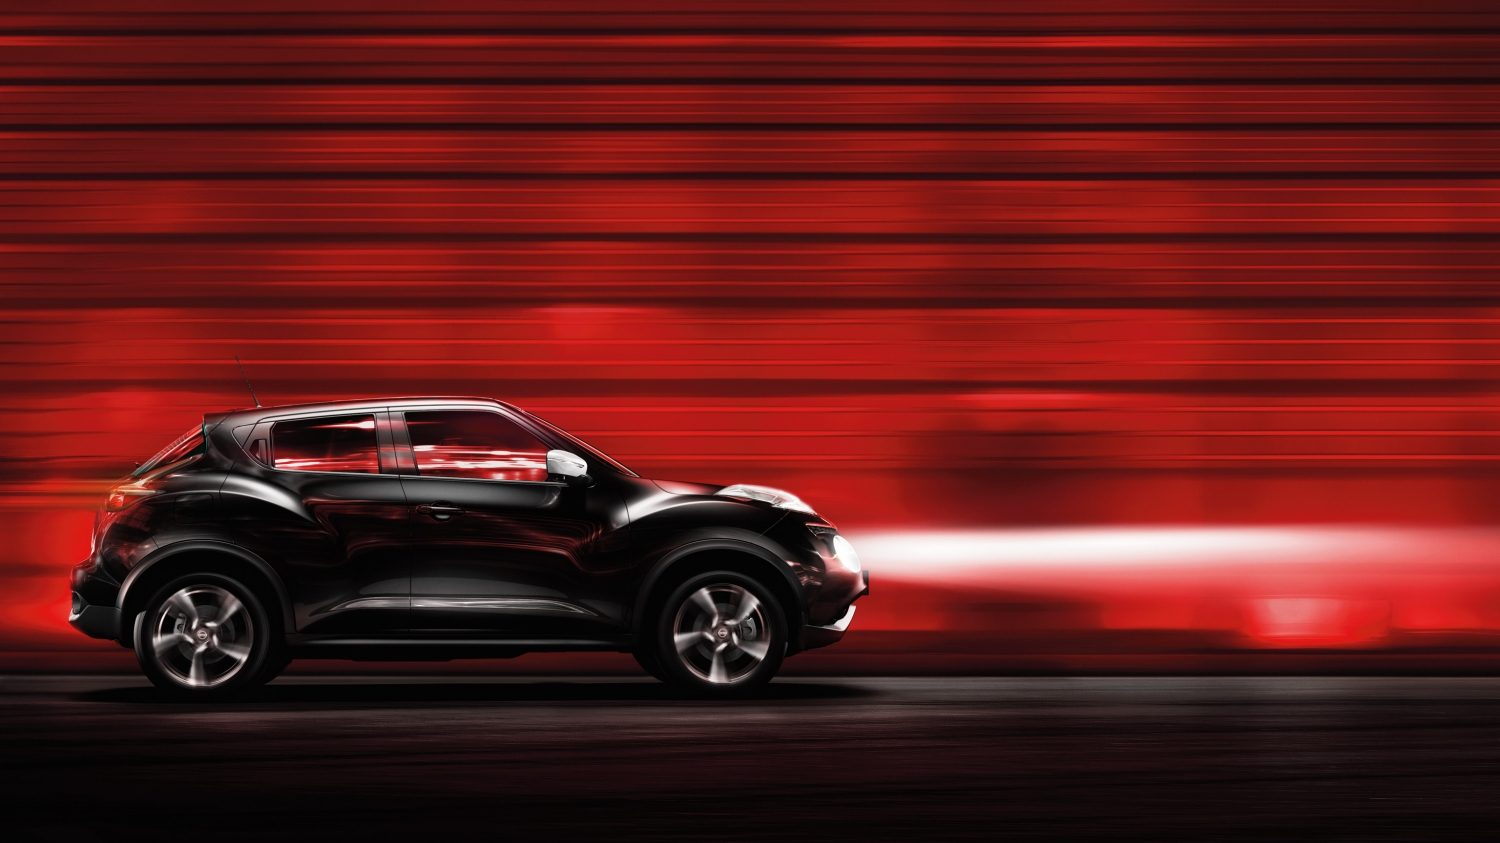 Design SUV compatto & piccolo - Vista laterale | Nissan Juke